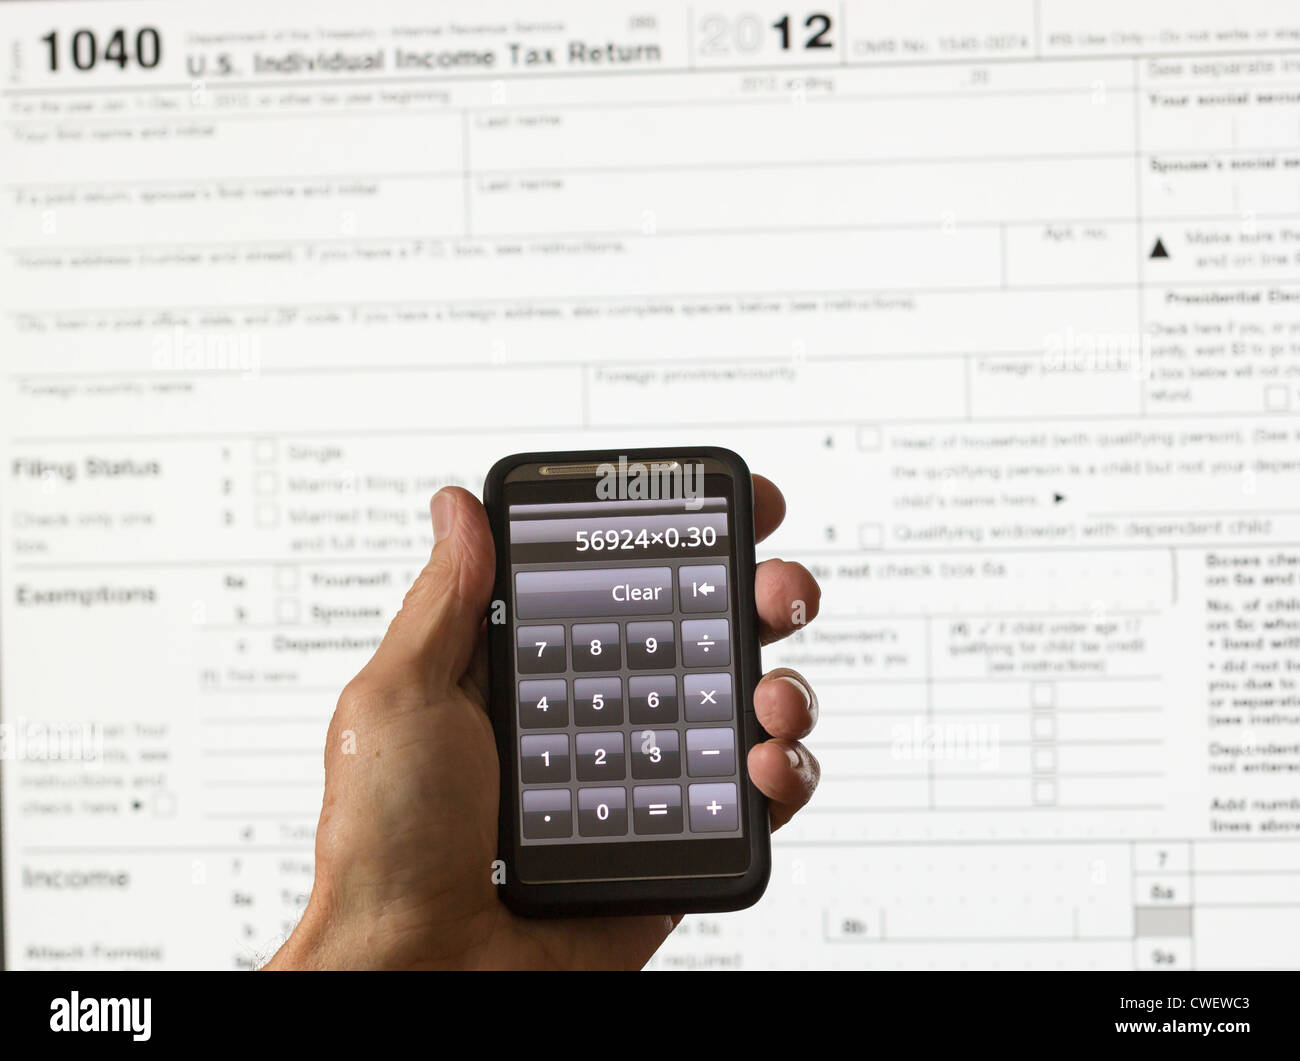 Electronic tax form 1040 for 2012 for us individual return on screen electronic tax form 1040 for 2012 for us individual return on screen with smartphone calculator falaconquin